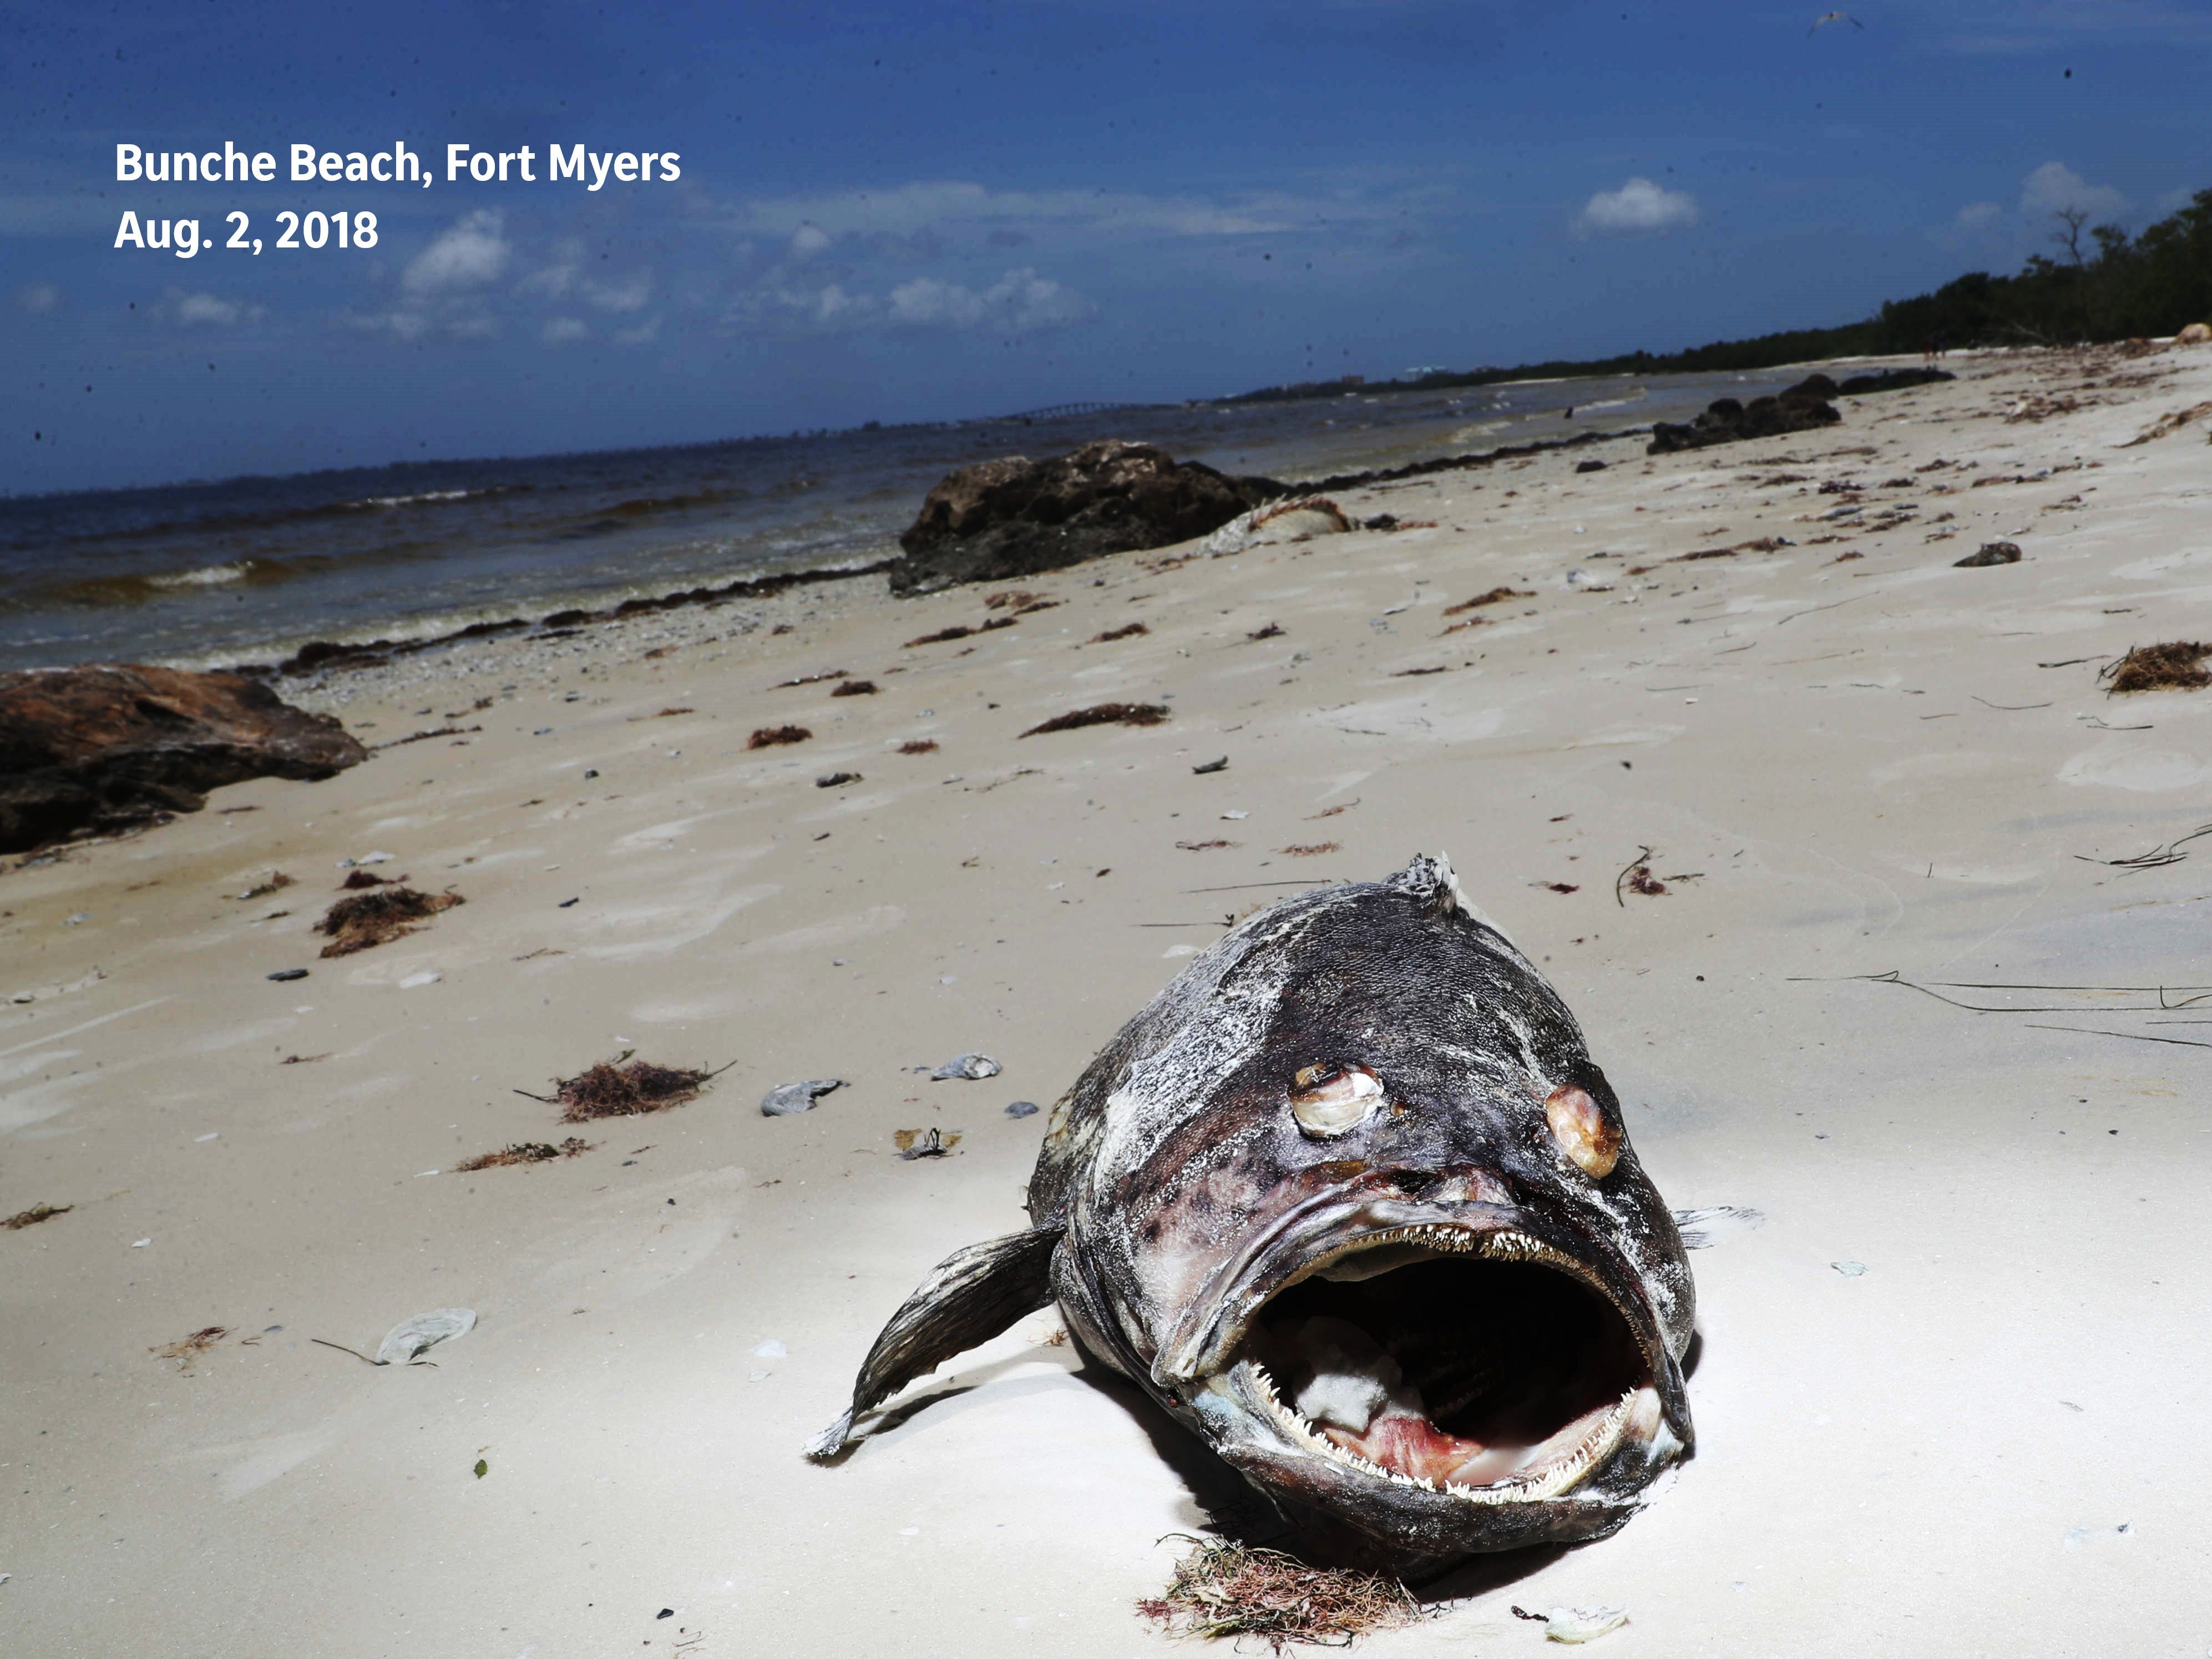 Before: A dead grouper among thousands of other fish wasphotographed on Aug. 2, 2018 on Bunche Beach in Fort Myers.